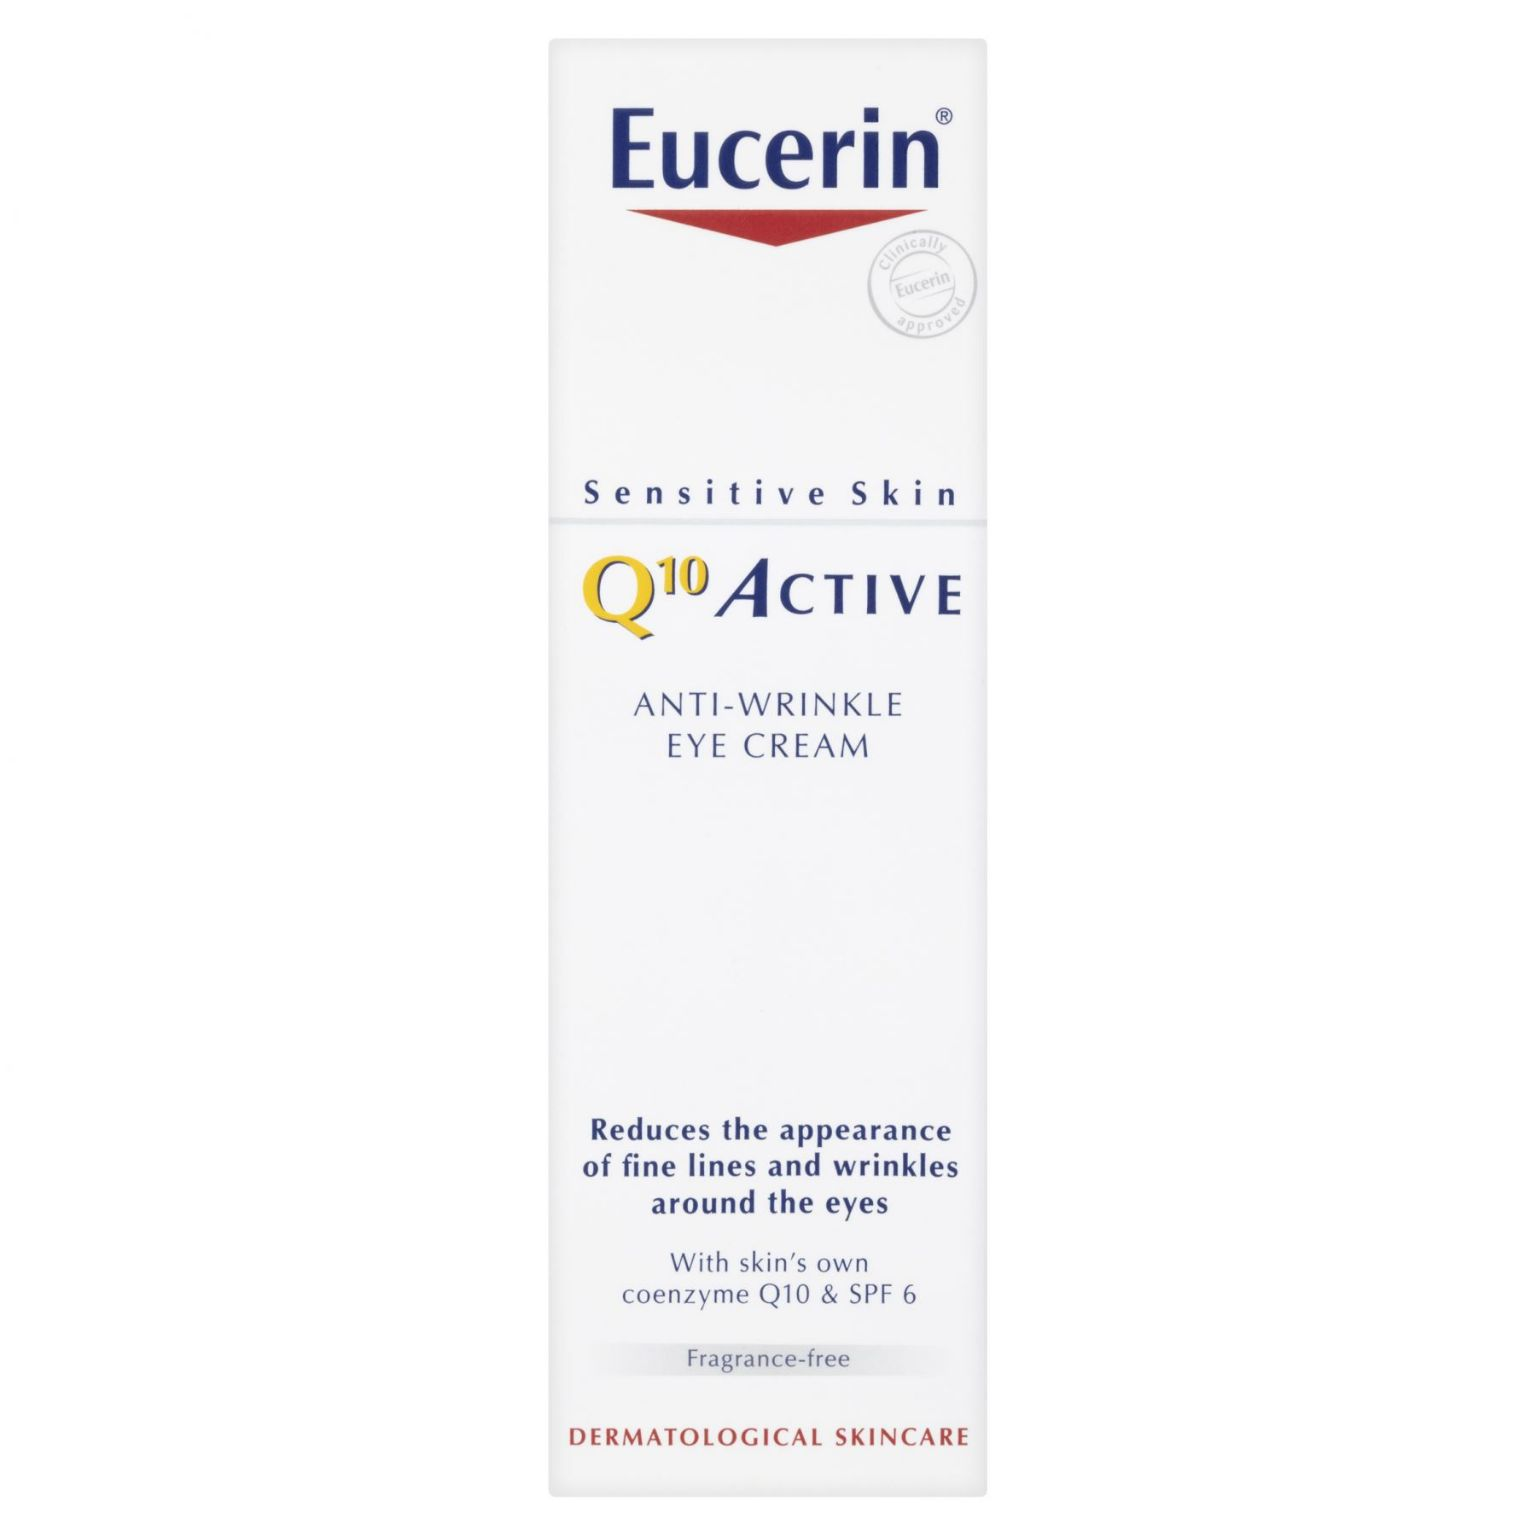 Q10 Active Anti-Wrinkle Eye Cream